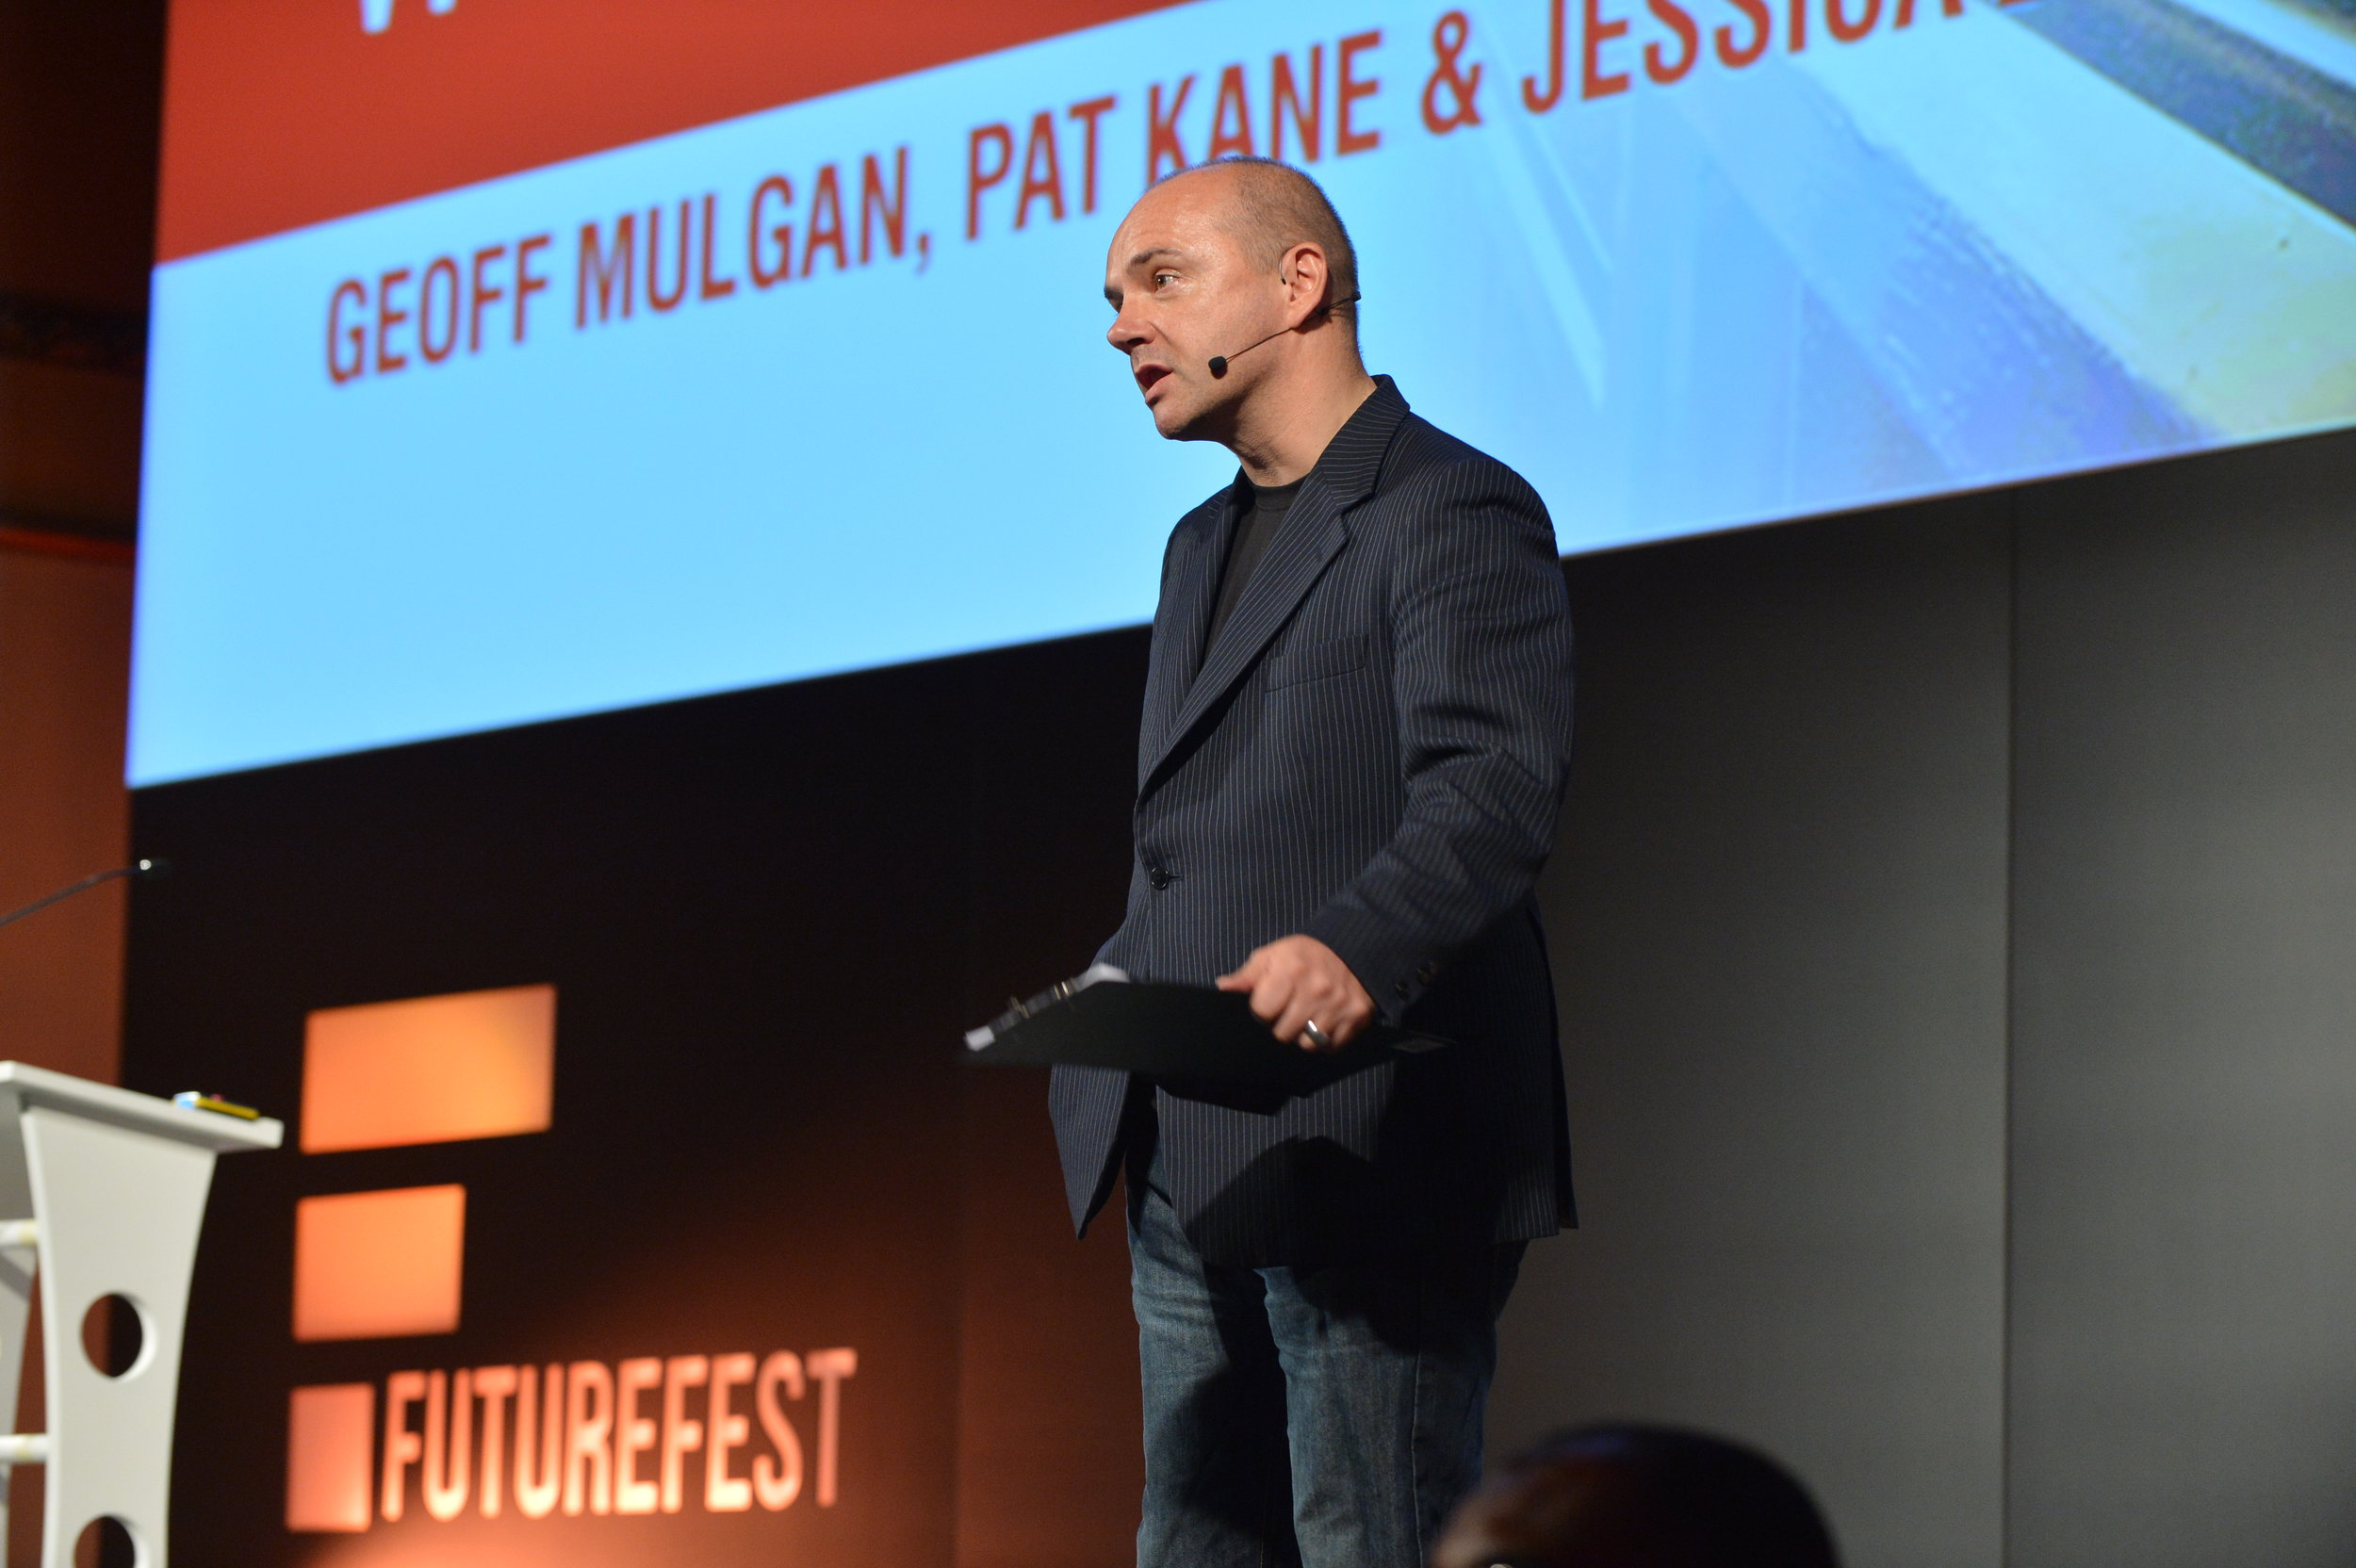 FUTUREFEST: FOUNDING/LEAD CURATOR